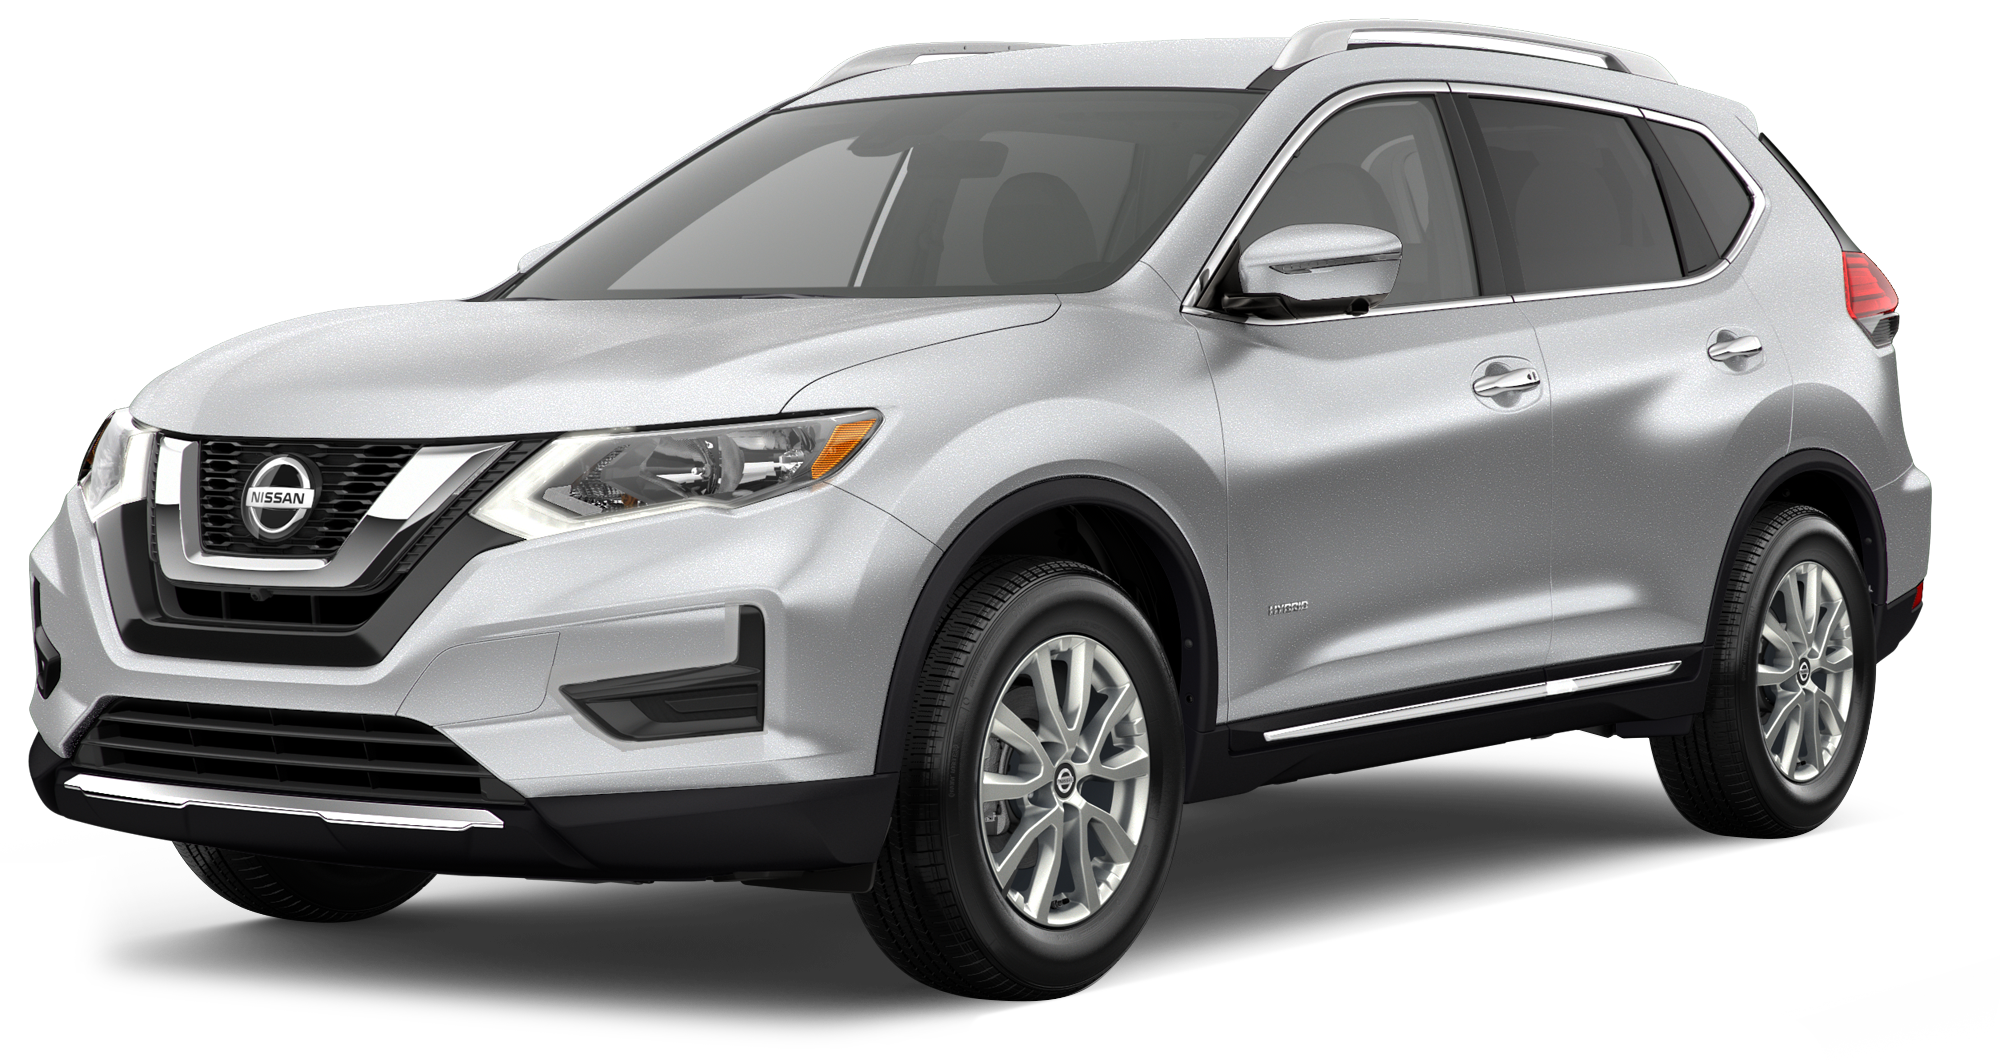 2019 Nissan Rogue Hybrid Incentives, Specials & Offers in ...